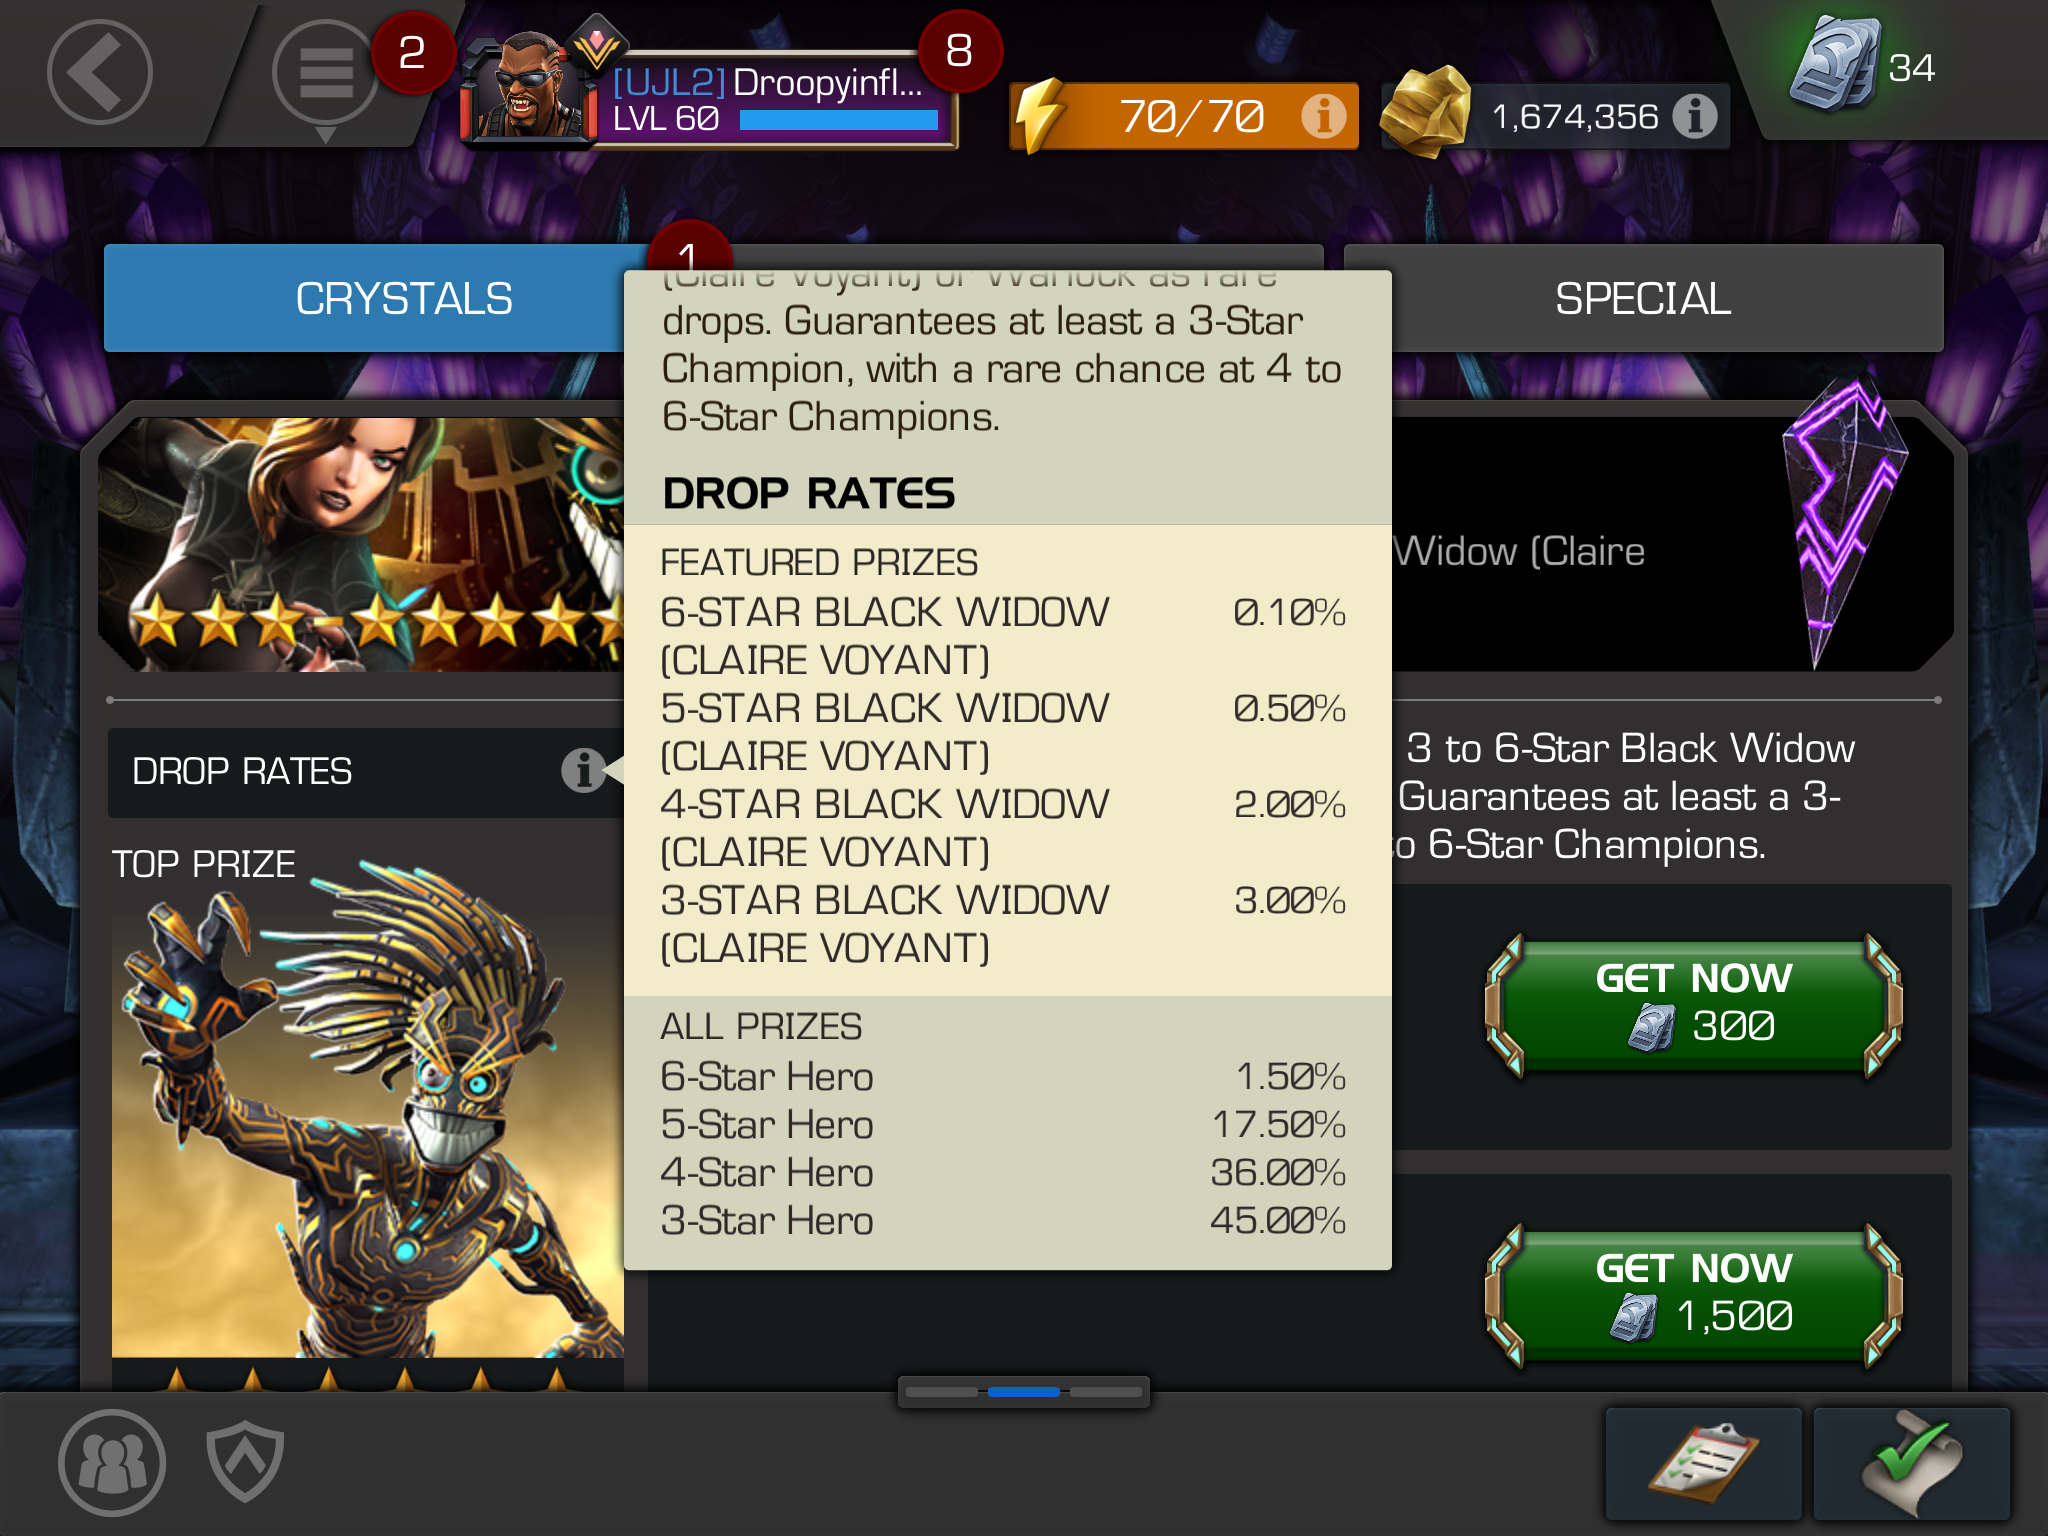 3 to 6 star featured pay for crystal's supposed odds